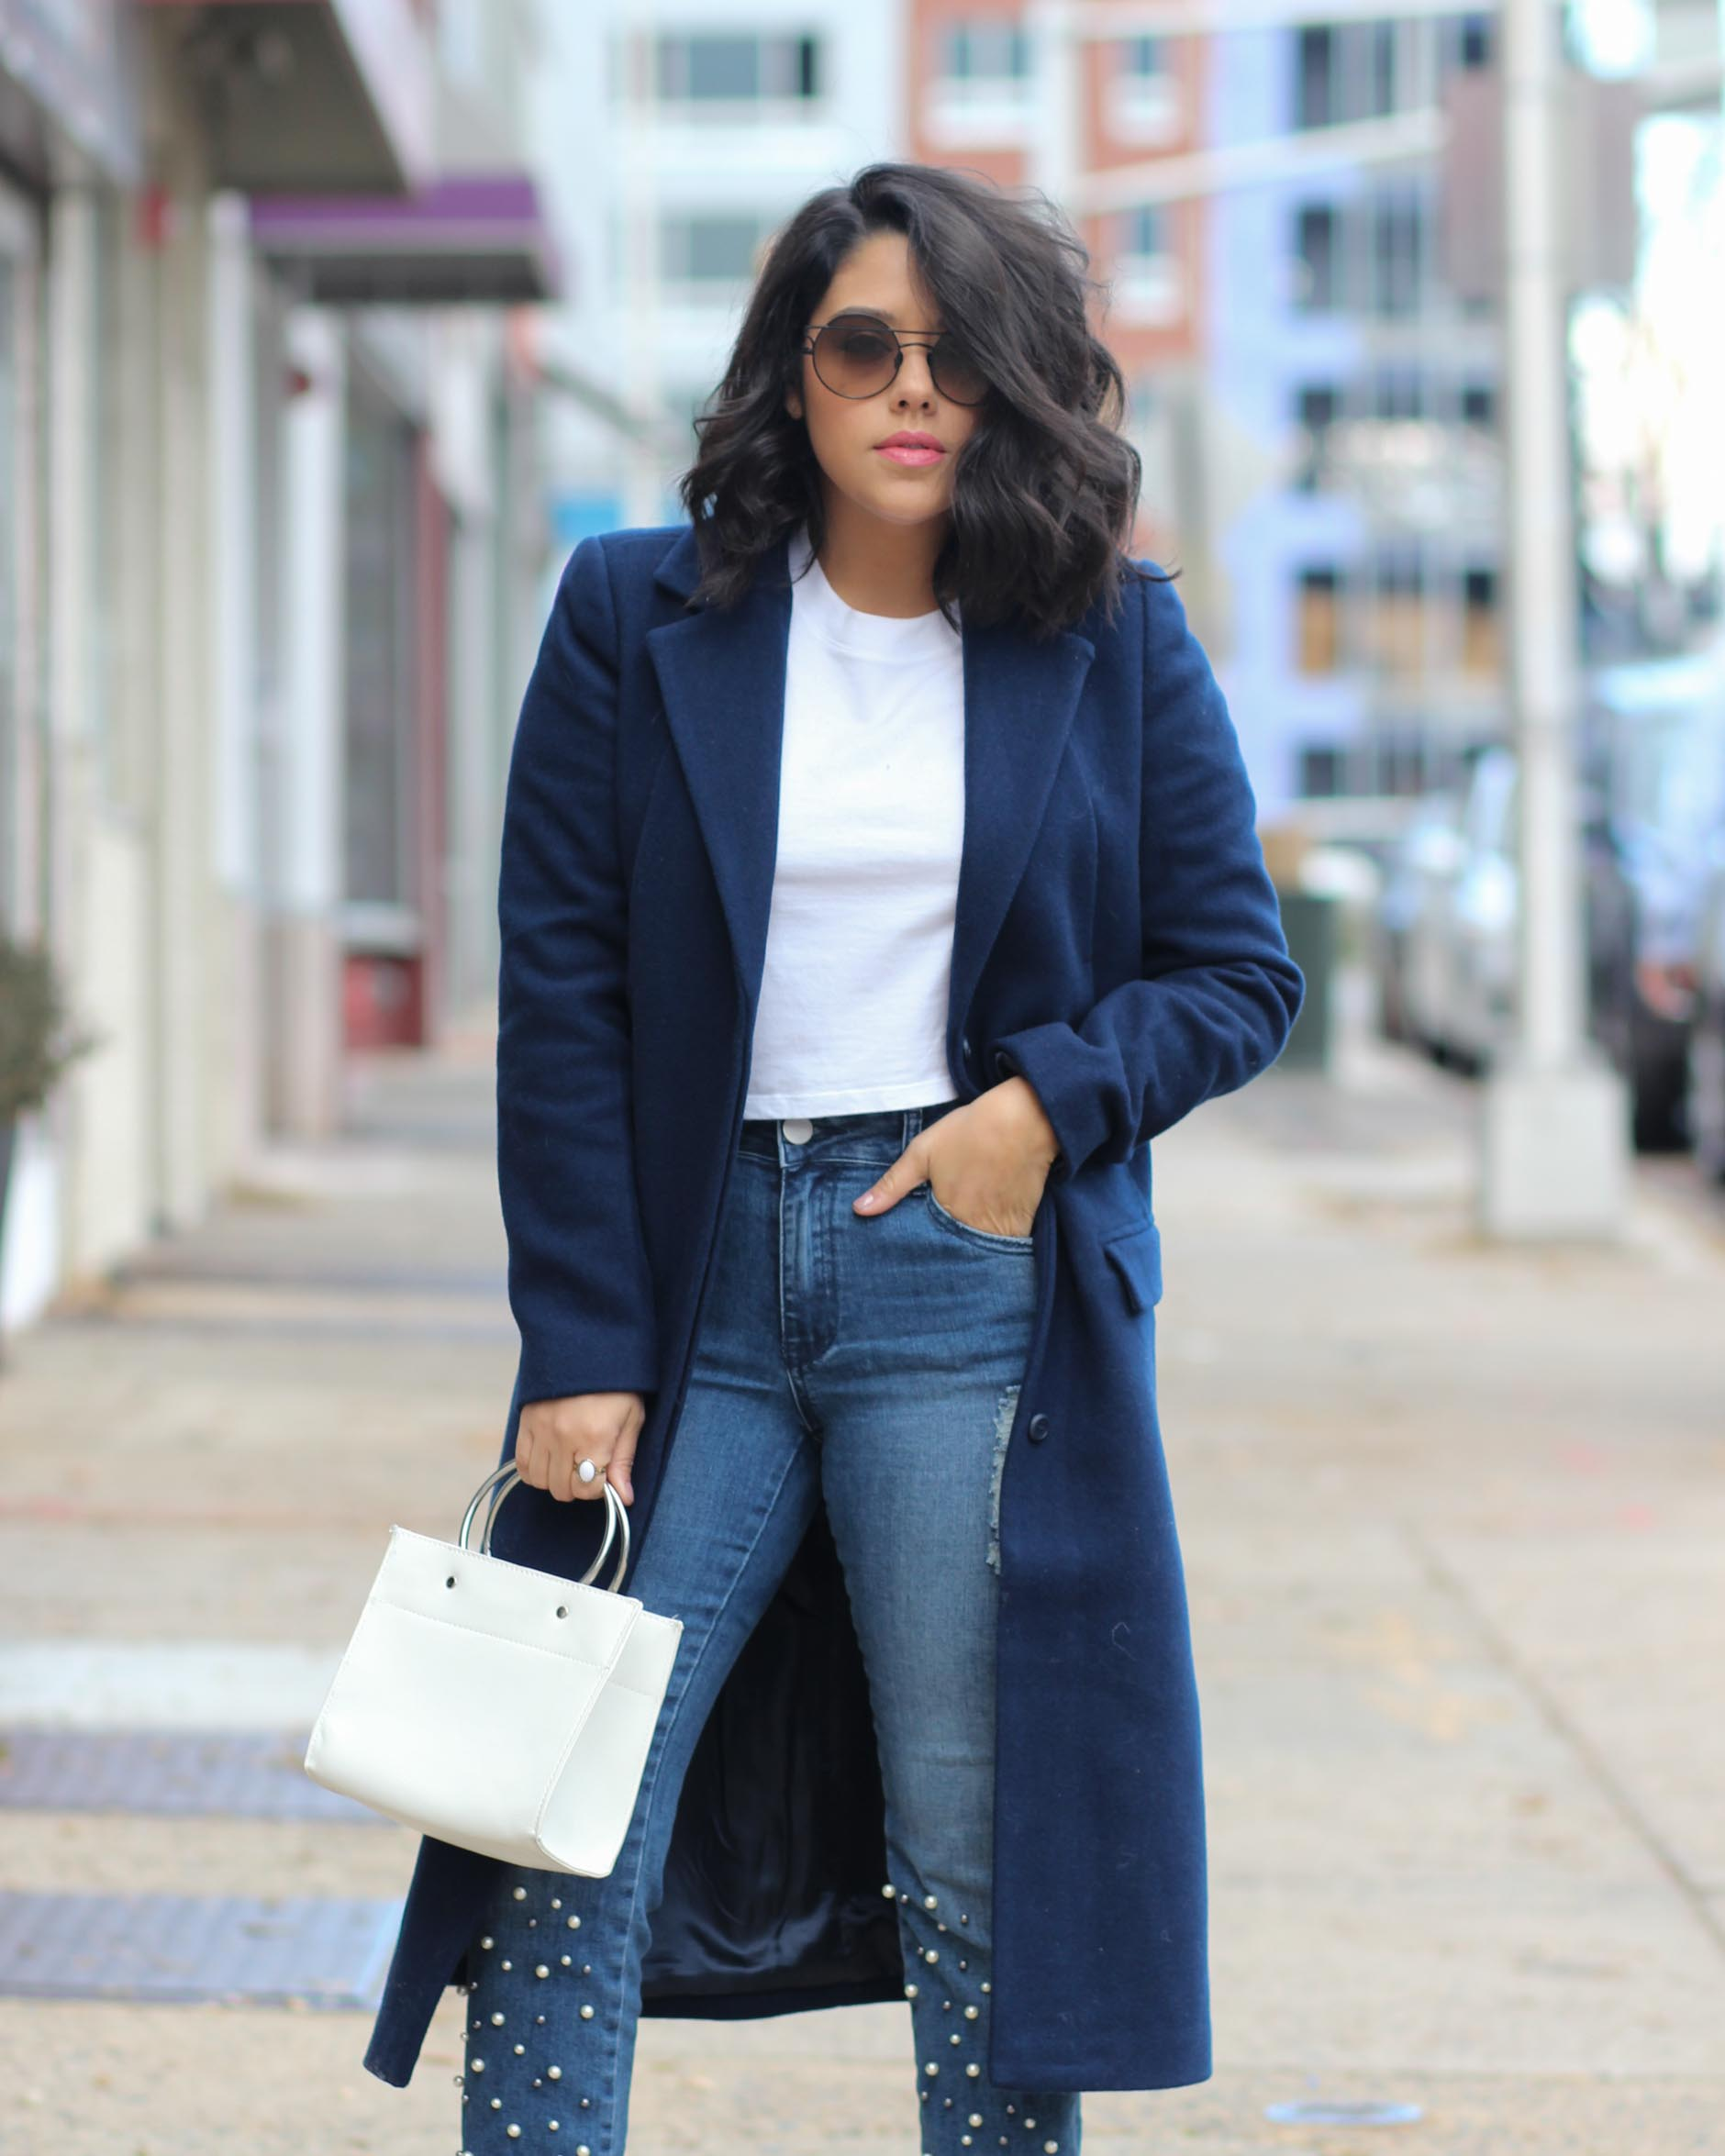 lifestyle blogger naty michele wearing navy coat and pearl jeans